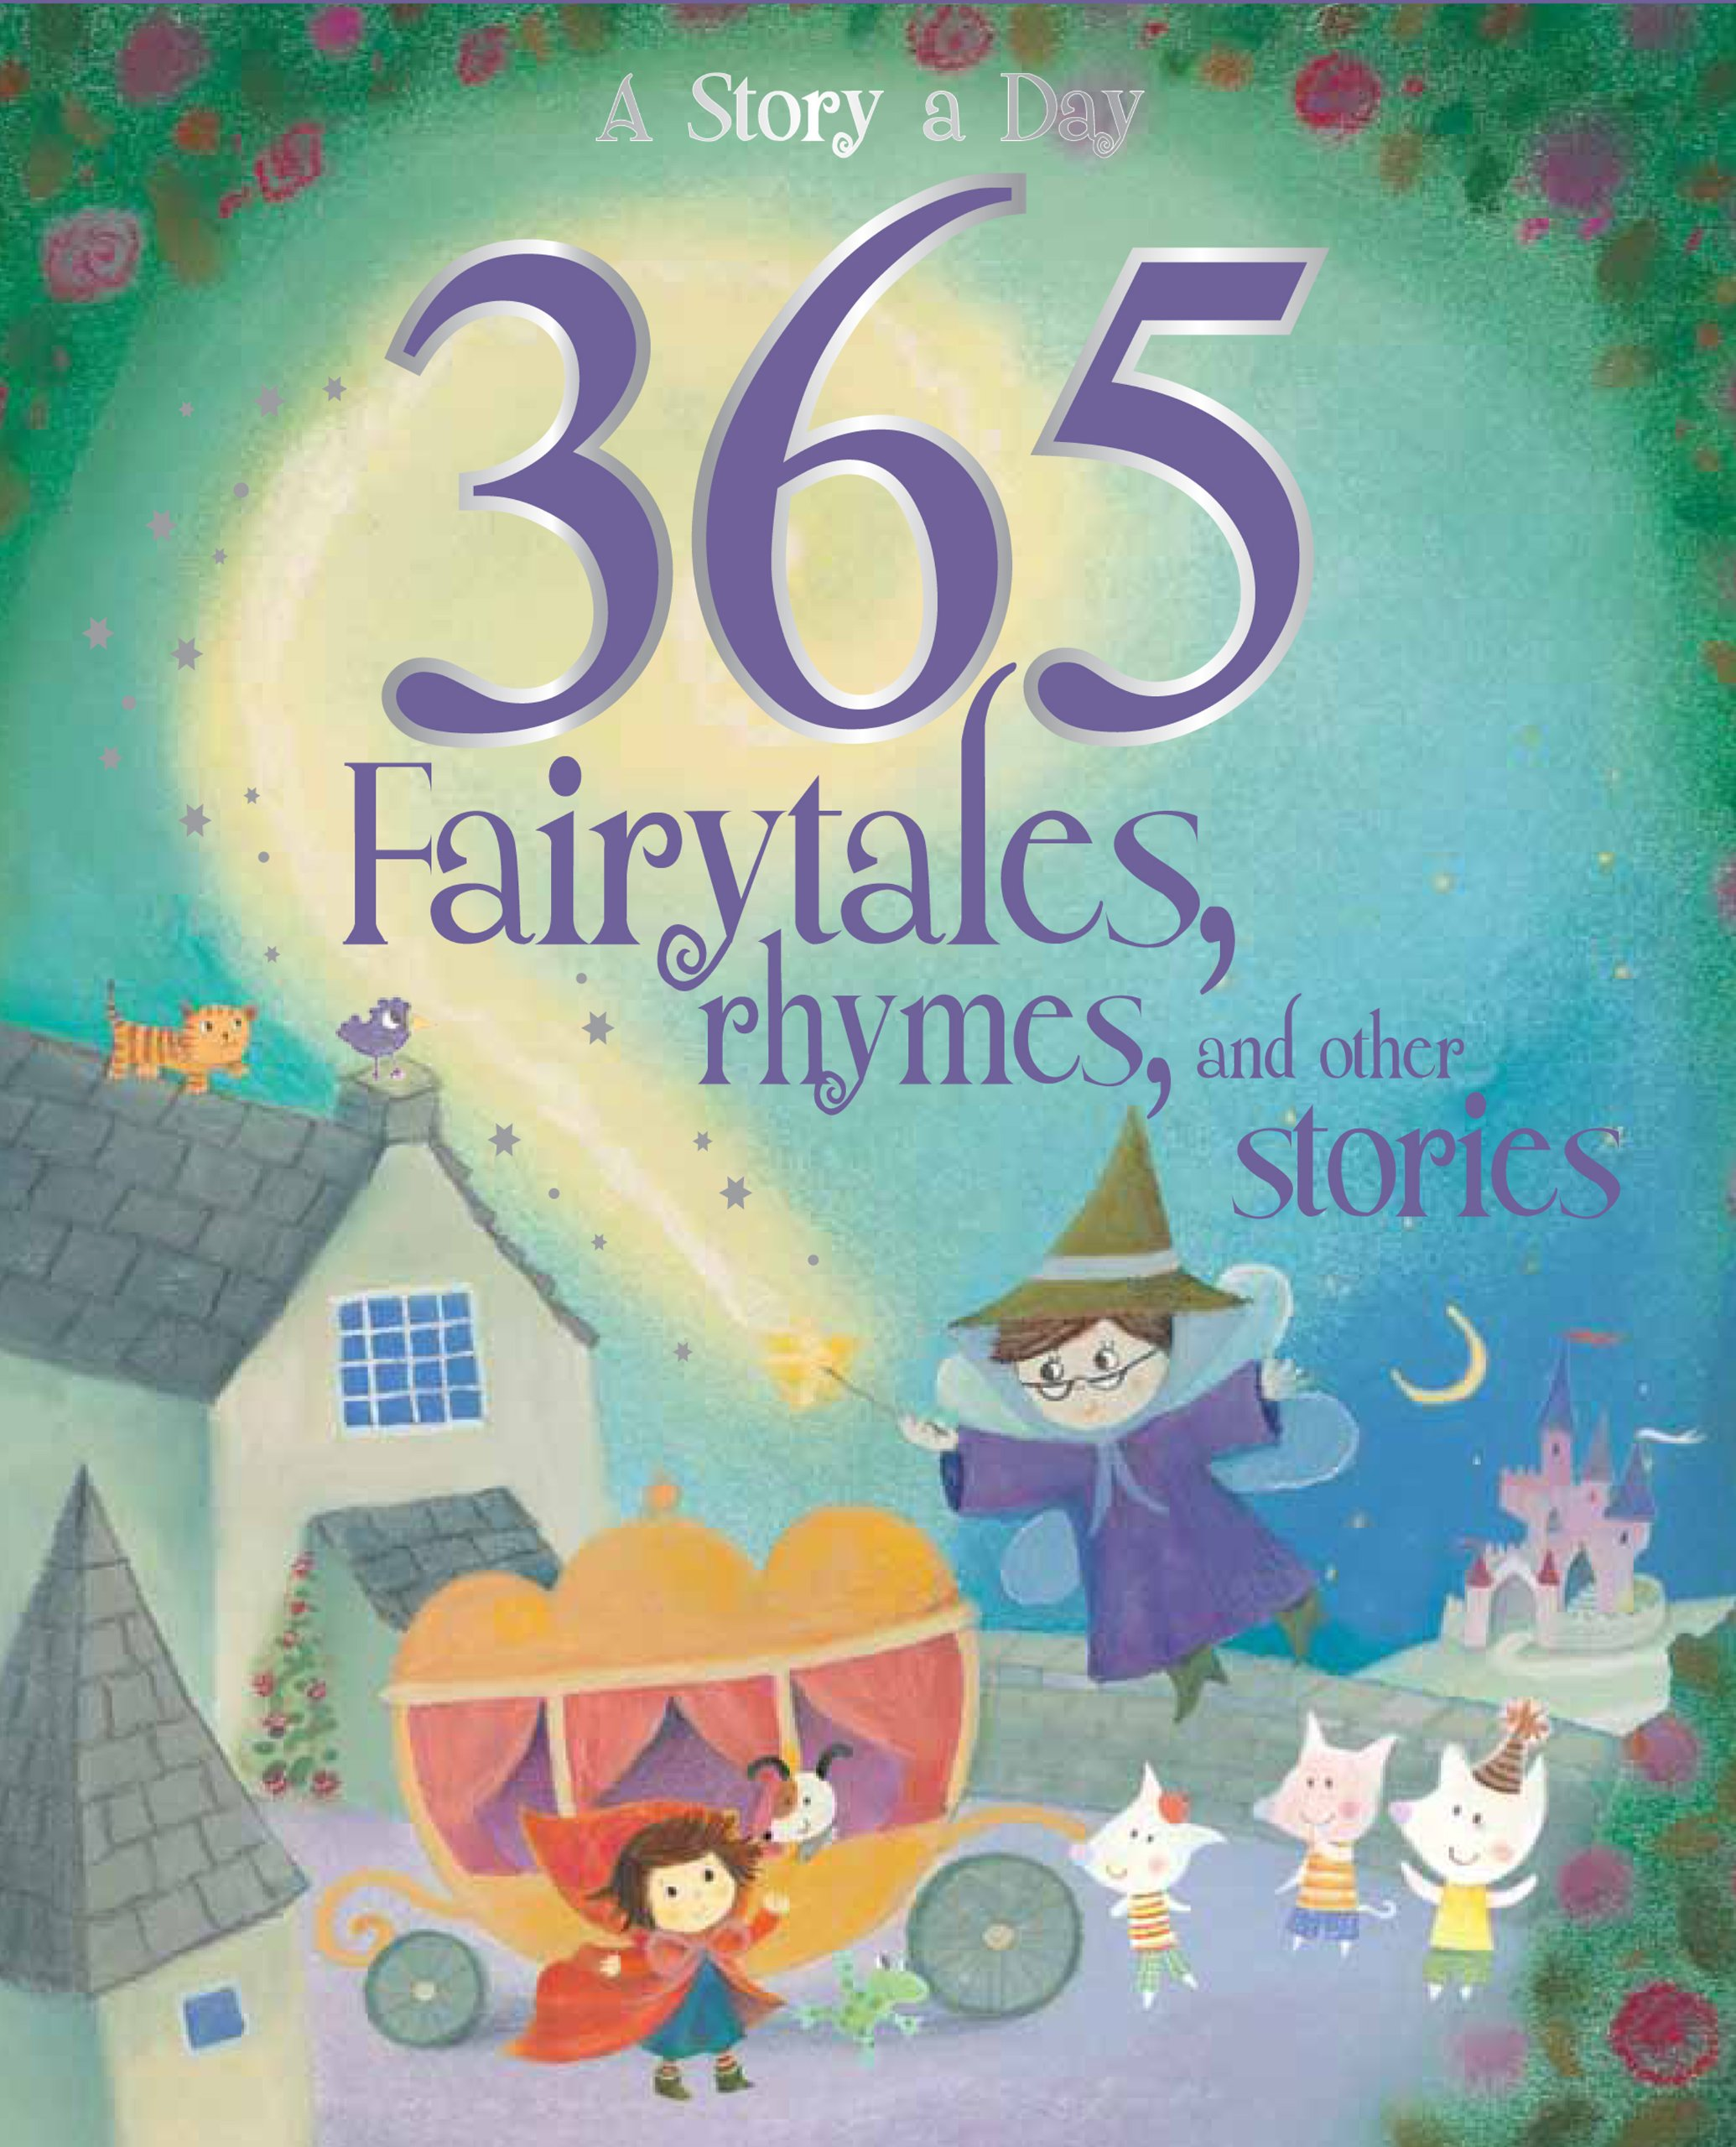 Uncategorized Fairy Tales For Kids 365 fairytales rhymes and other stories treasury parragon books 9781445438542 amazon com books